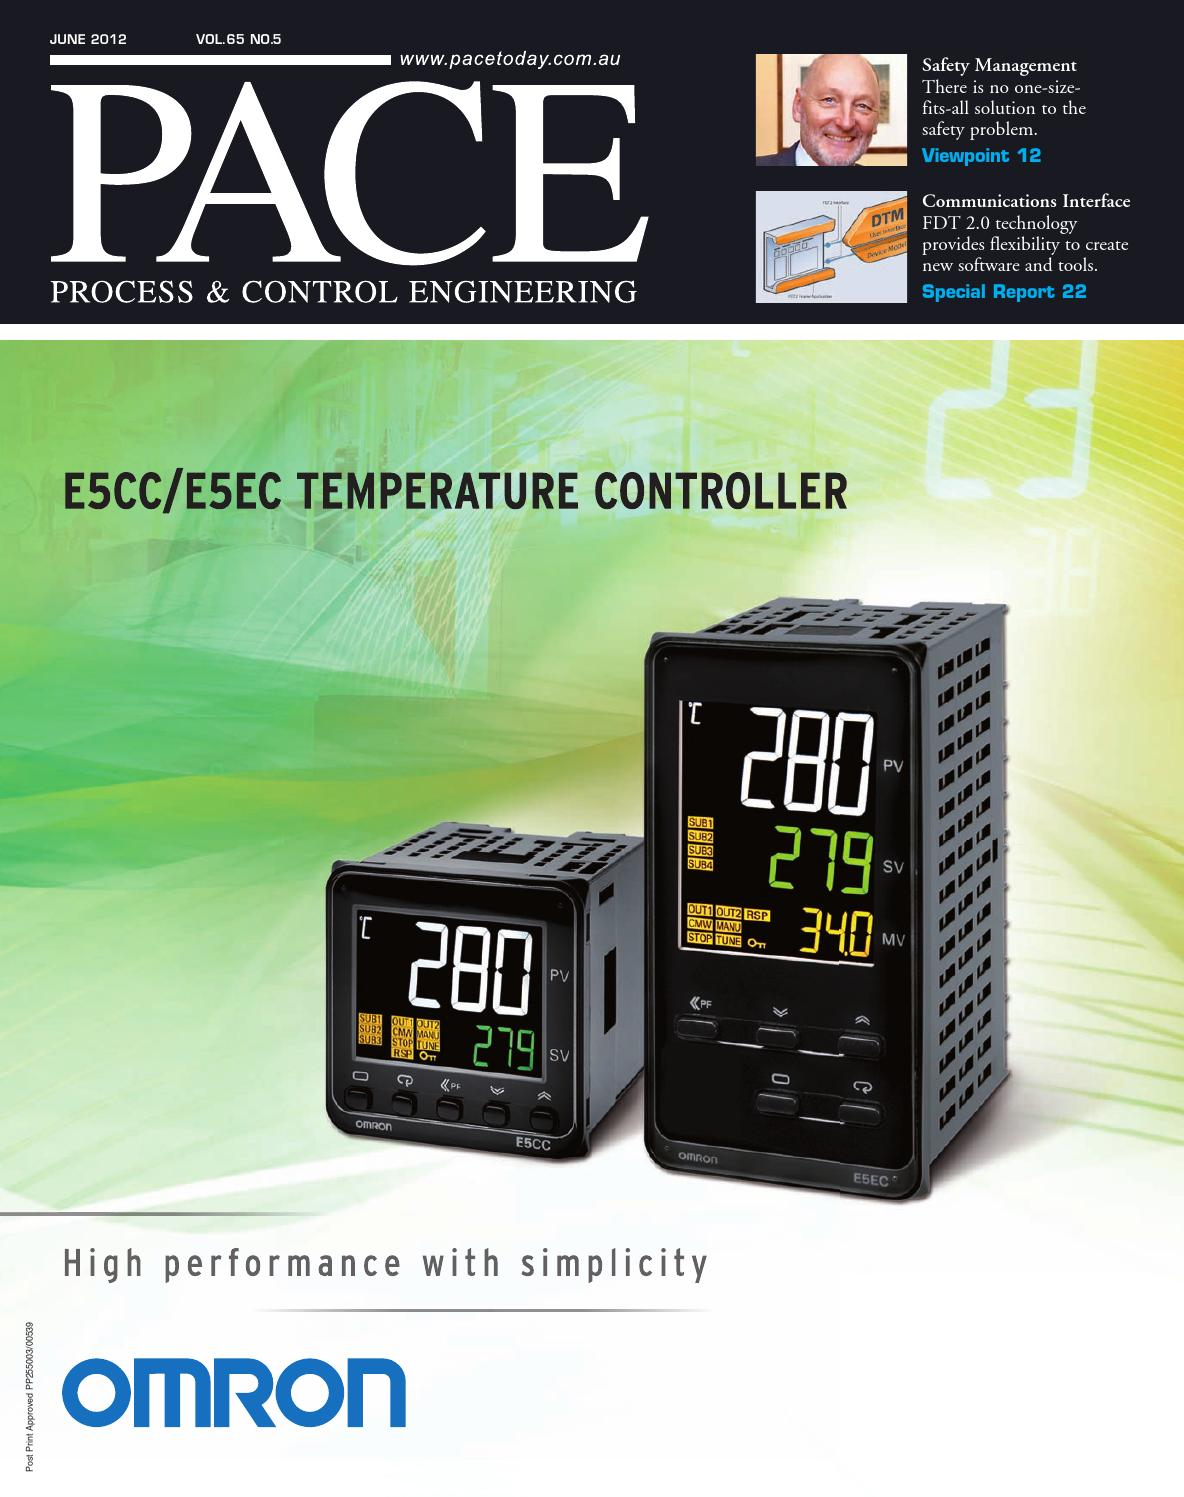 Pace Process Control Engineering June 2012 By Primecreative Energy Saver Circuit Diagrams On Wiring Diagram Plc Omron Issuu